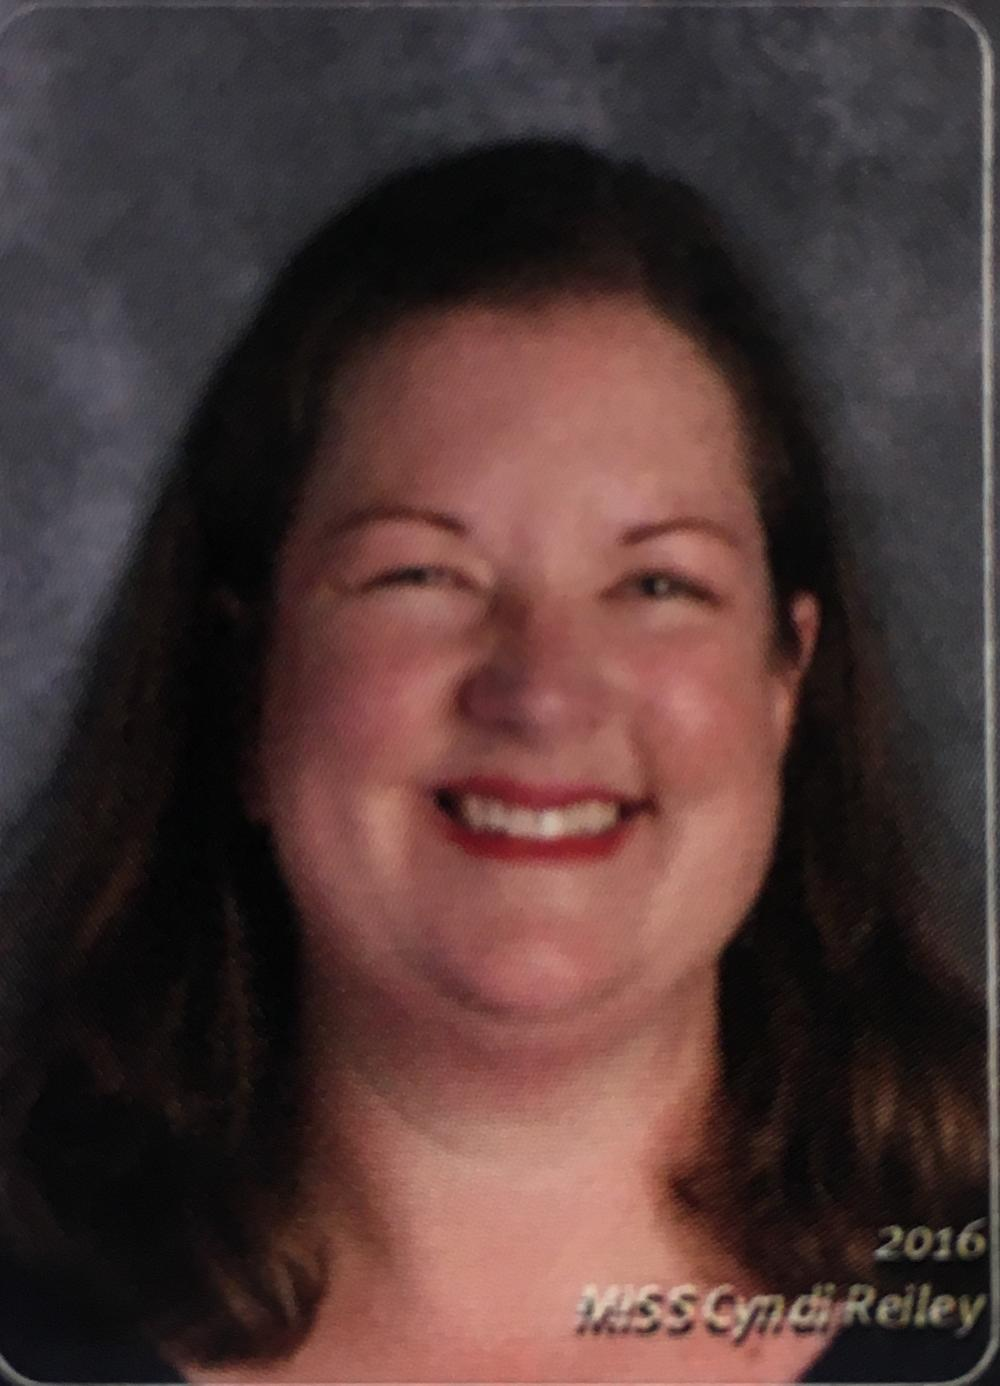 Picture of teacher Cindy Reily.